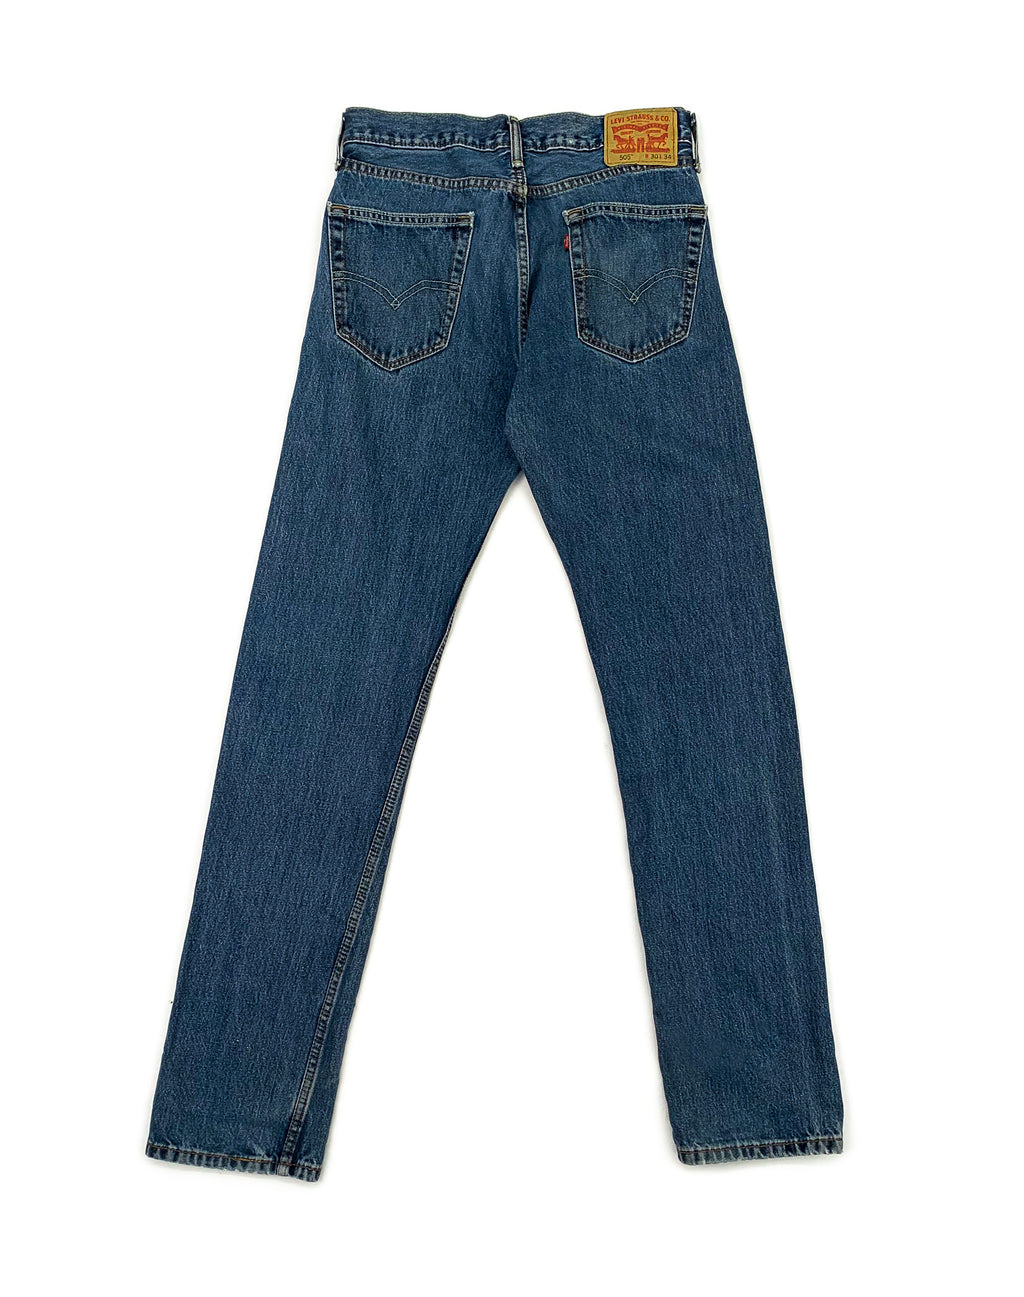 LEVI'S MID-WASH 505 JEANS